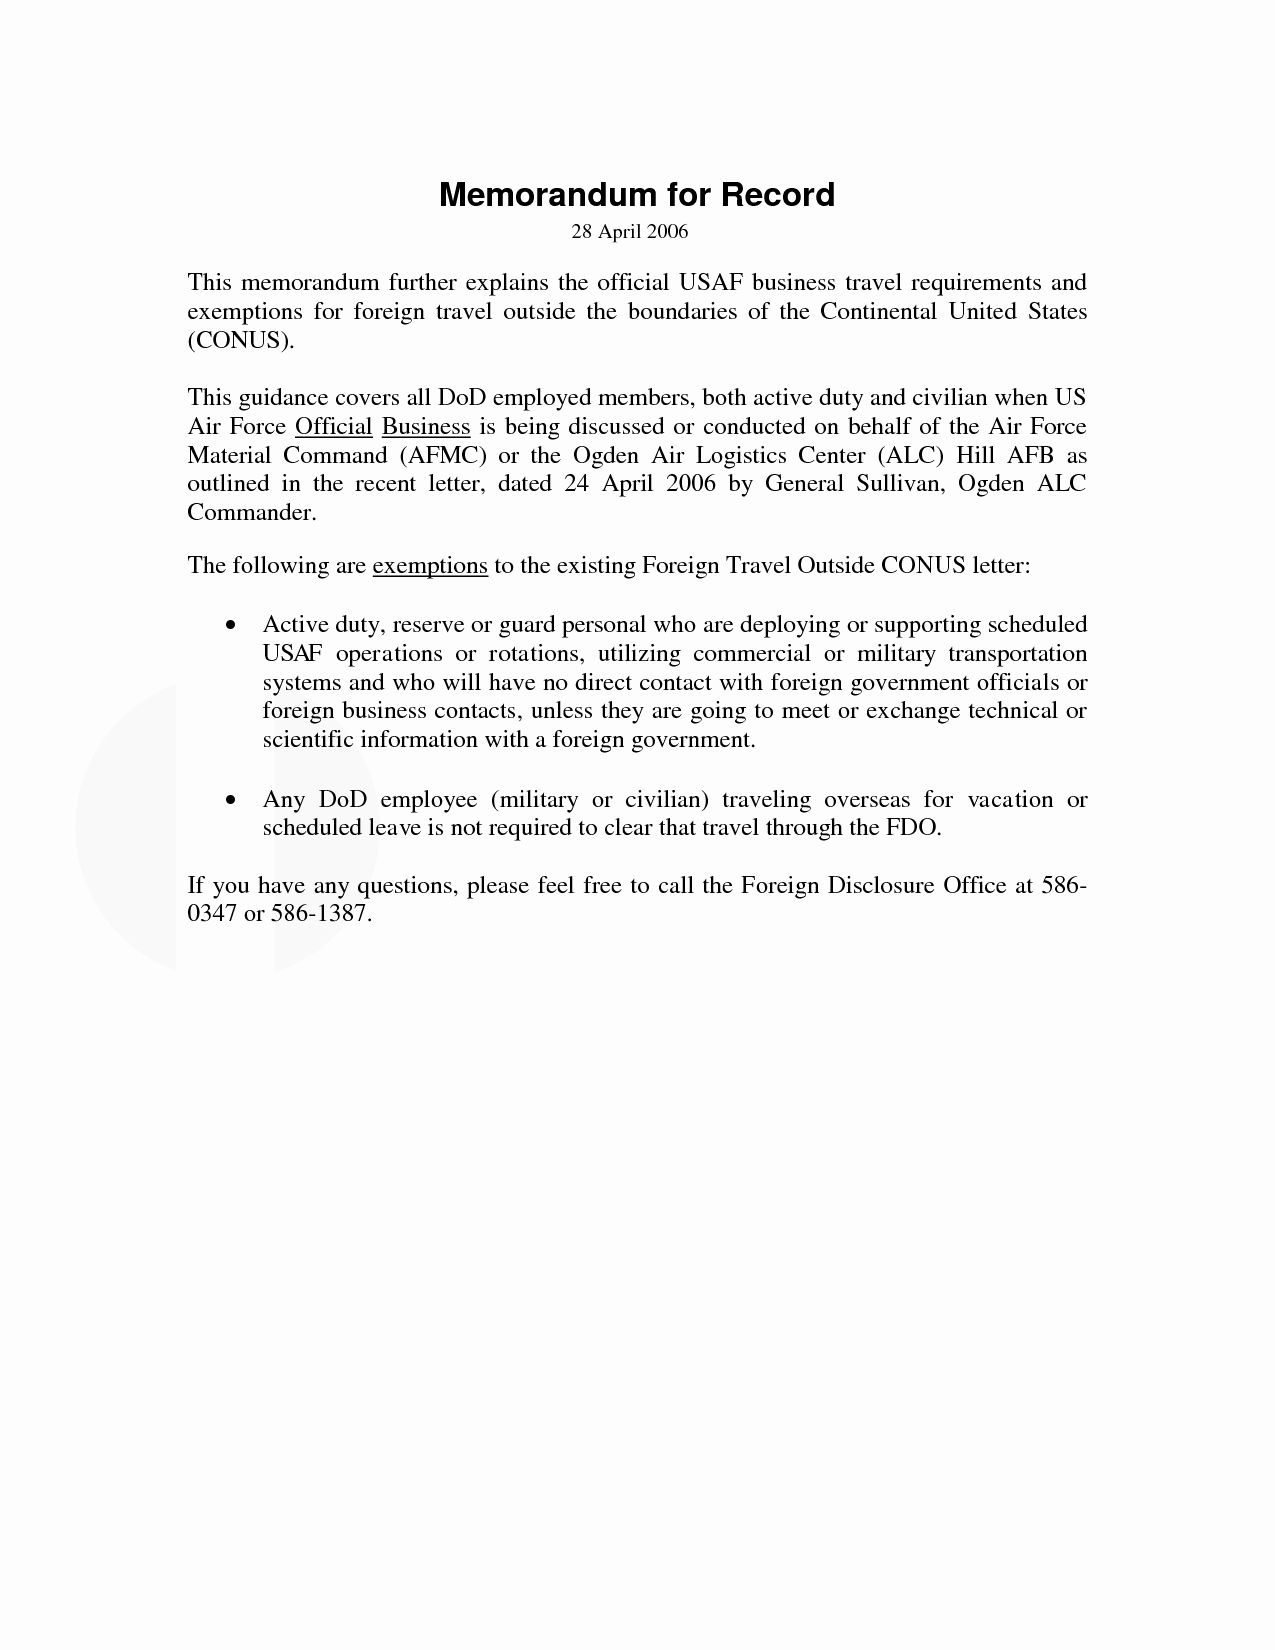 Memorandum for Record Template New 10 Best Of Memorandum for Record Example Army